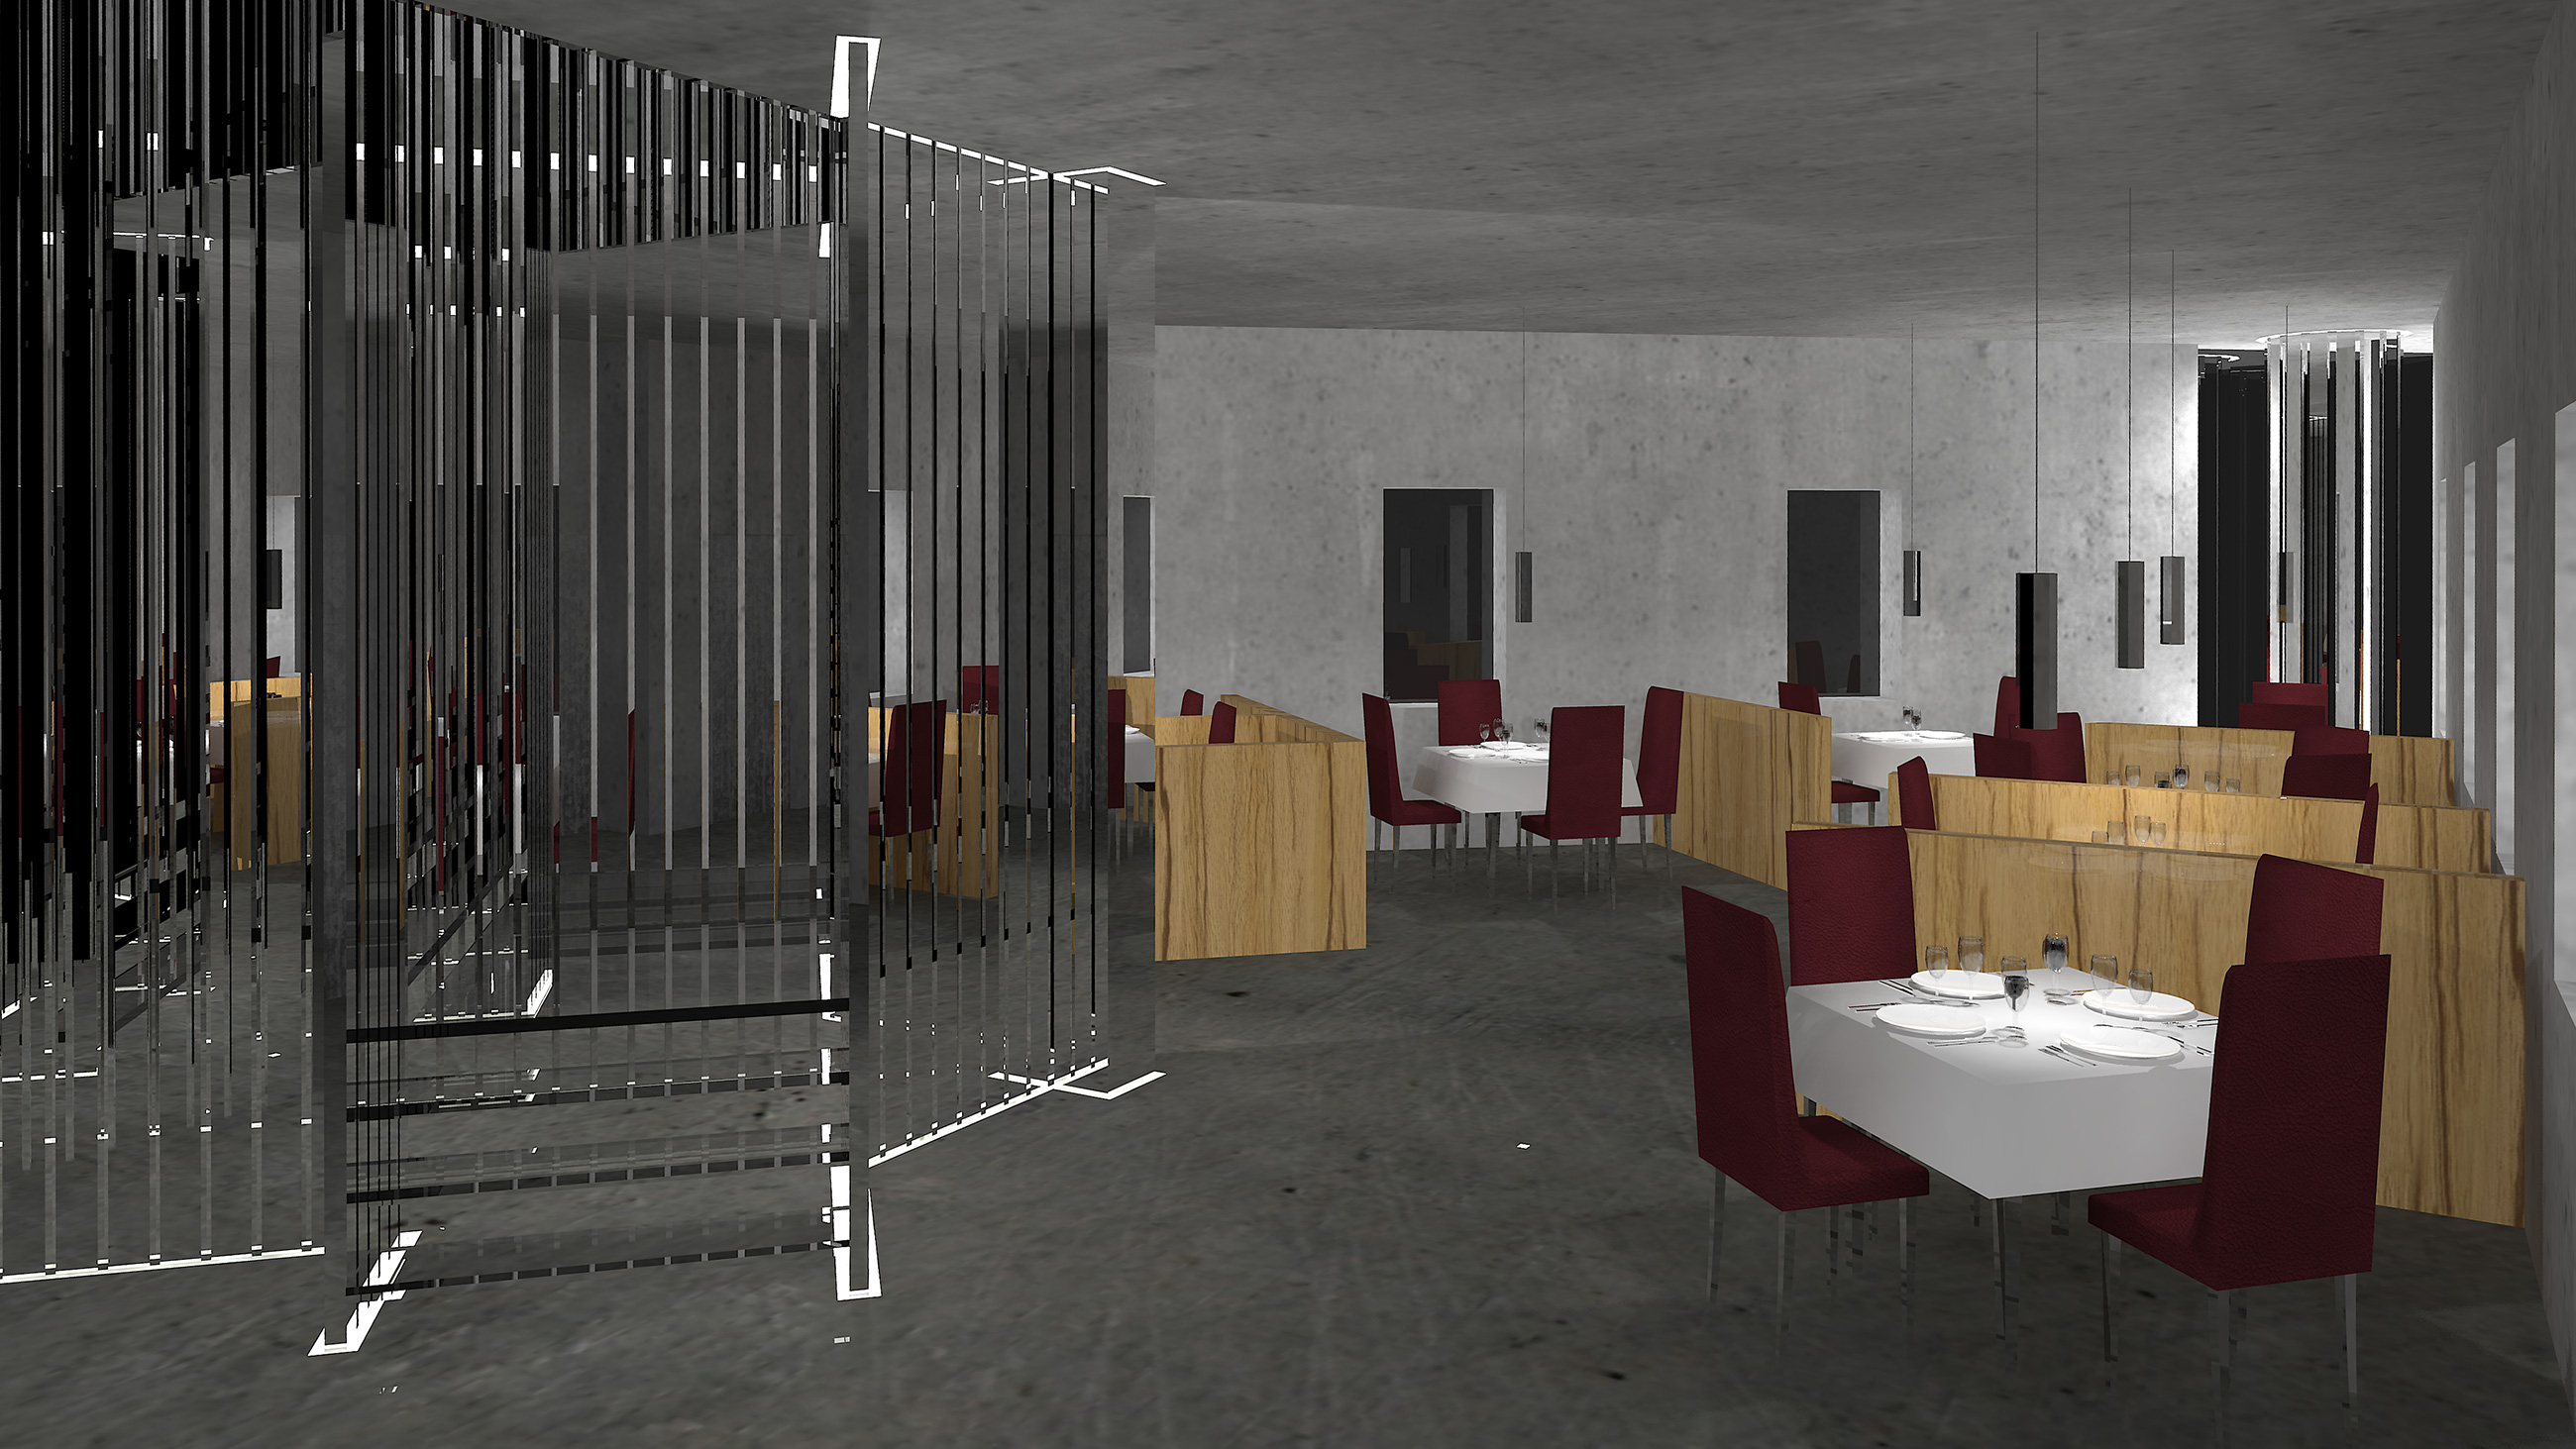 Art deco restaurant entrance with concrete walls, oak partitions, glass staircase, chrome columns and oxblood leather seats